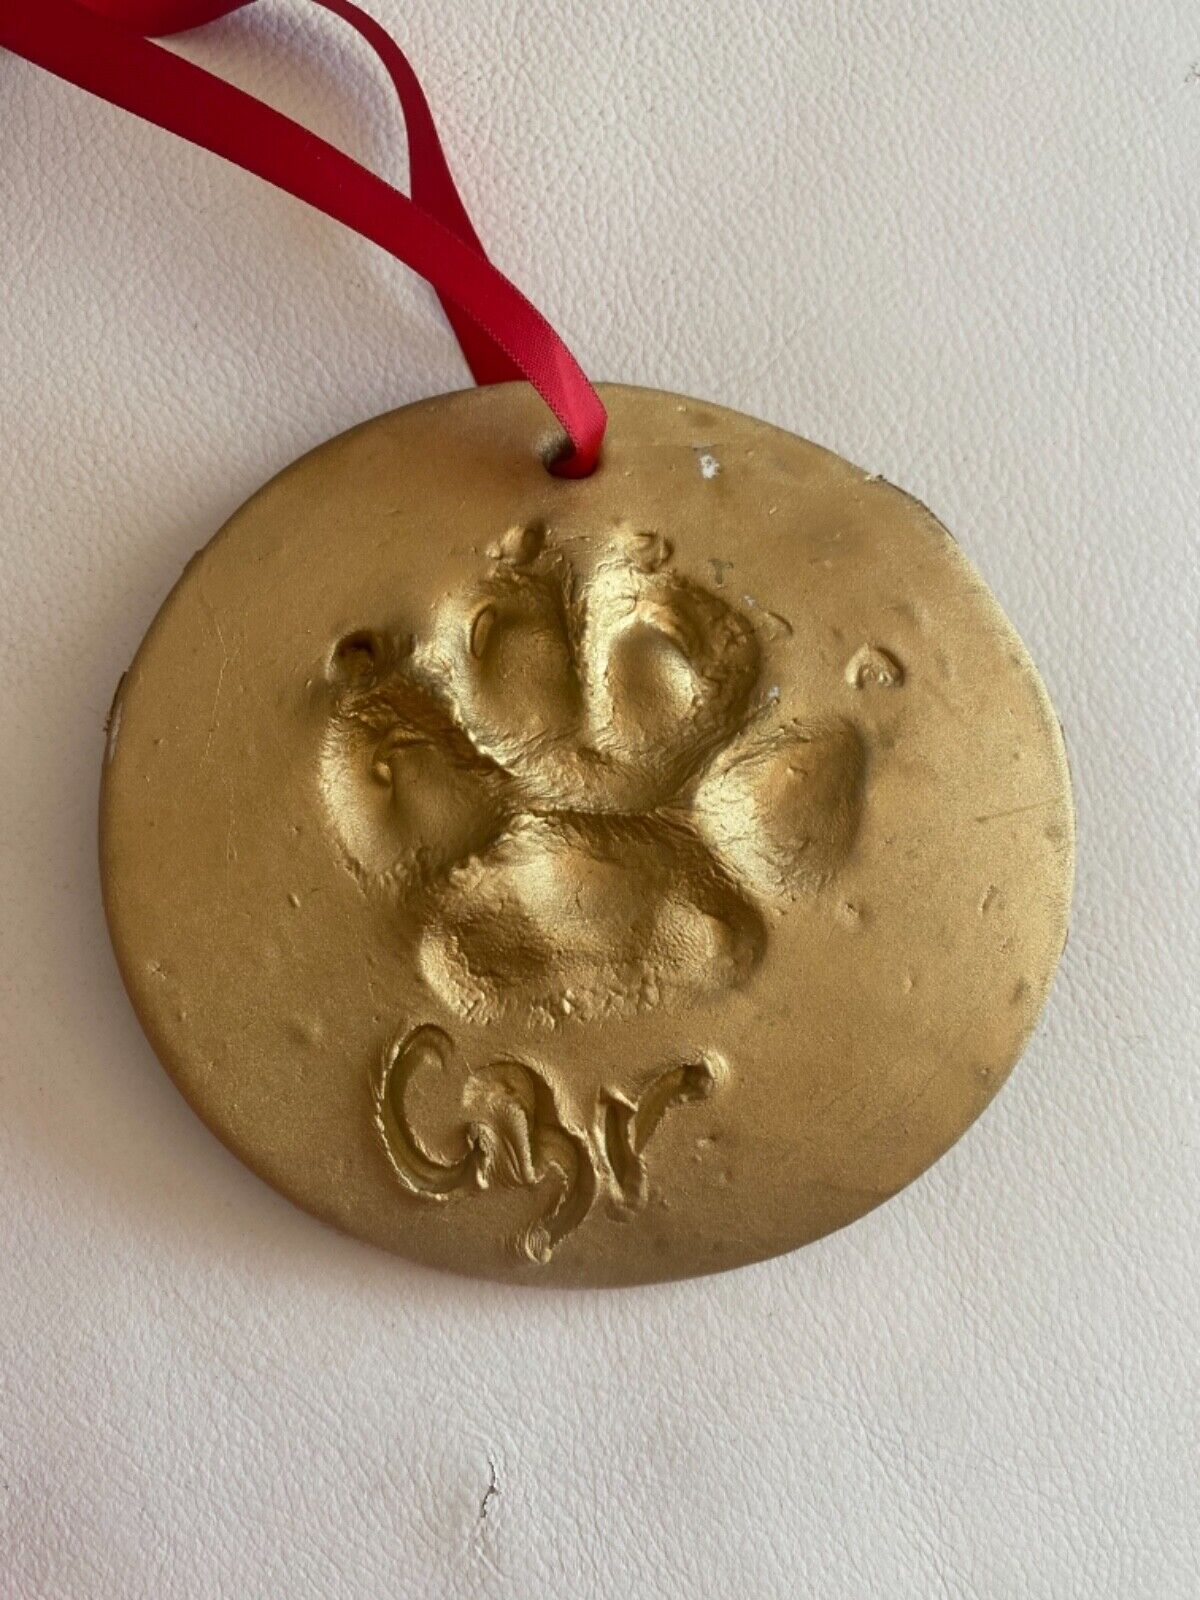 CZR s PAW PRINT raising Donations For ACTSS  - CA$105.00